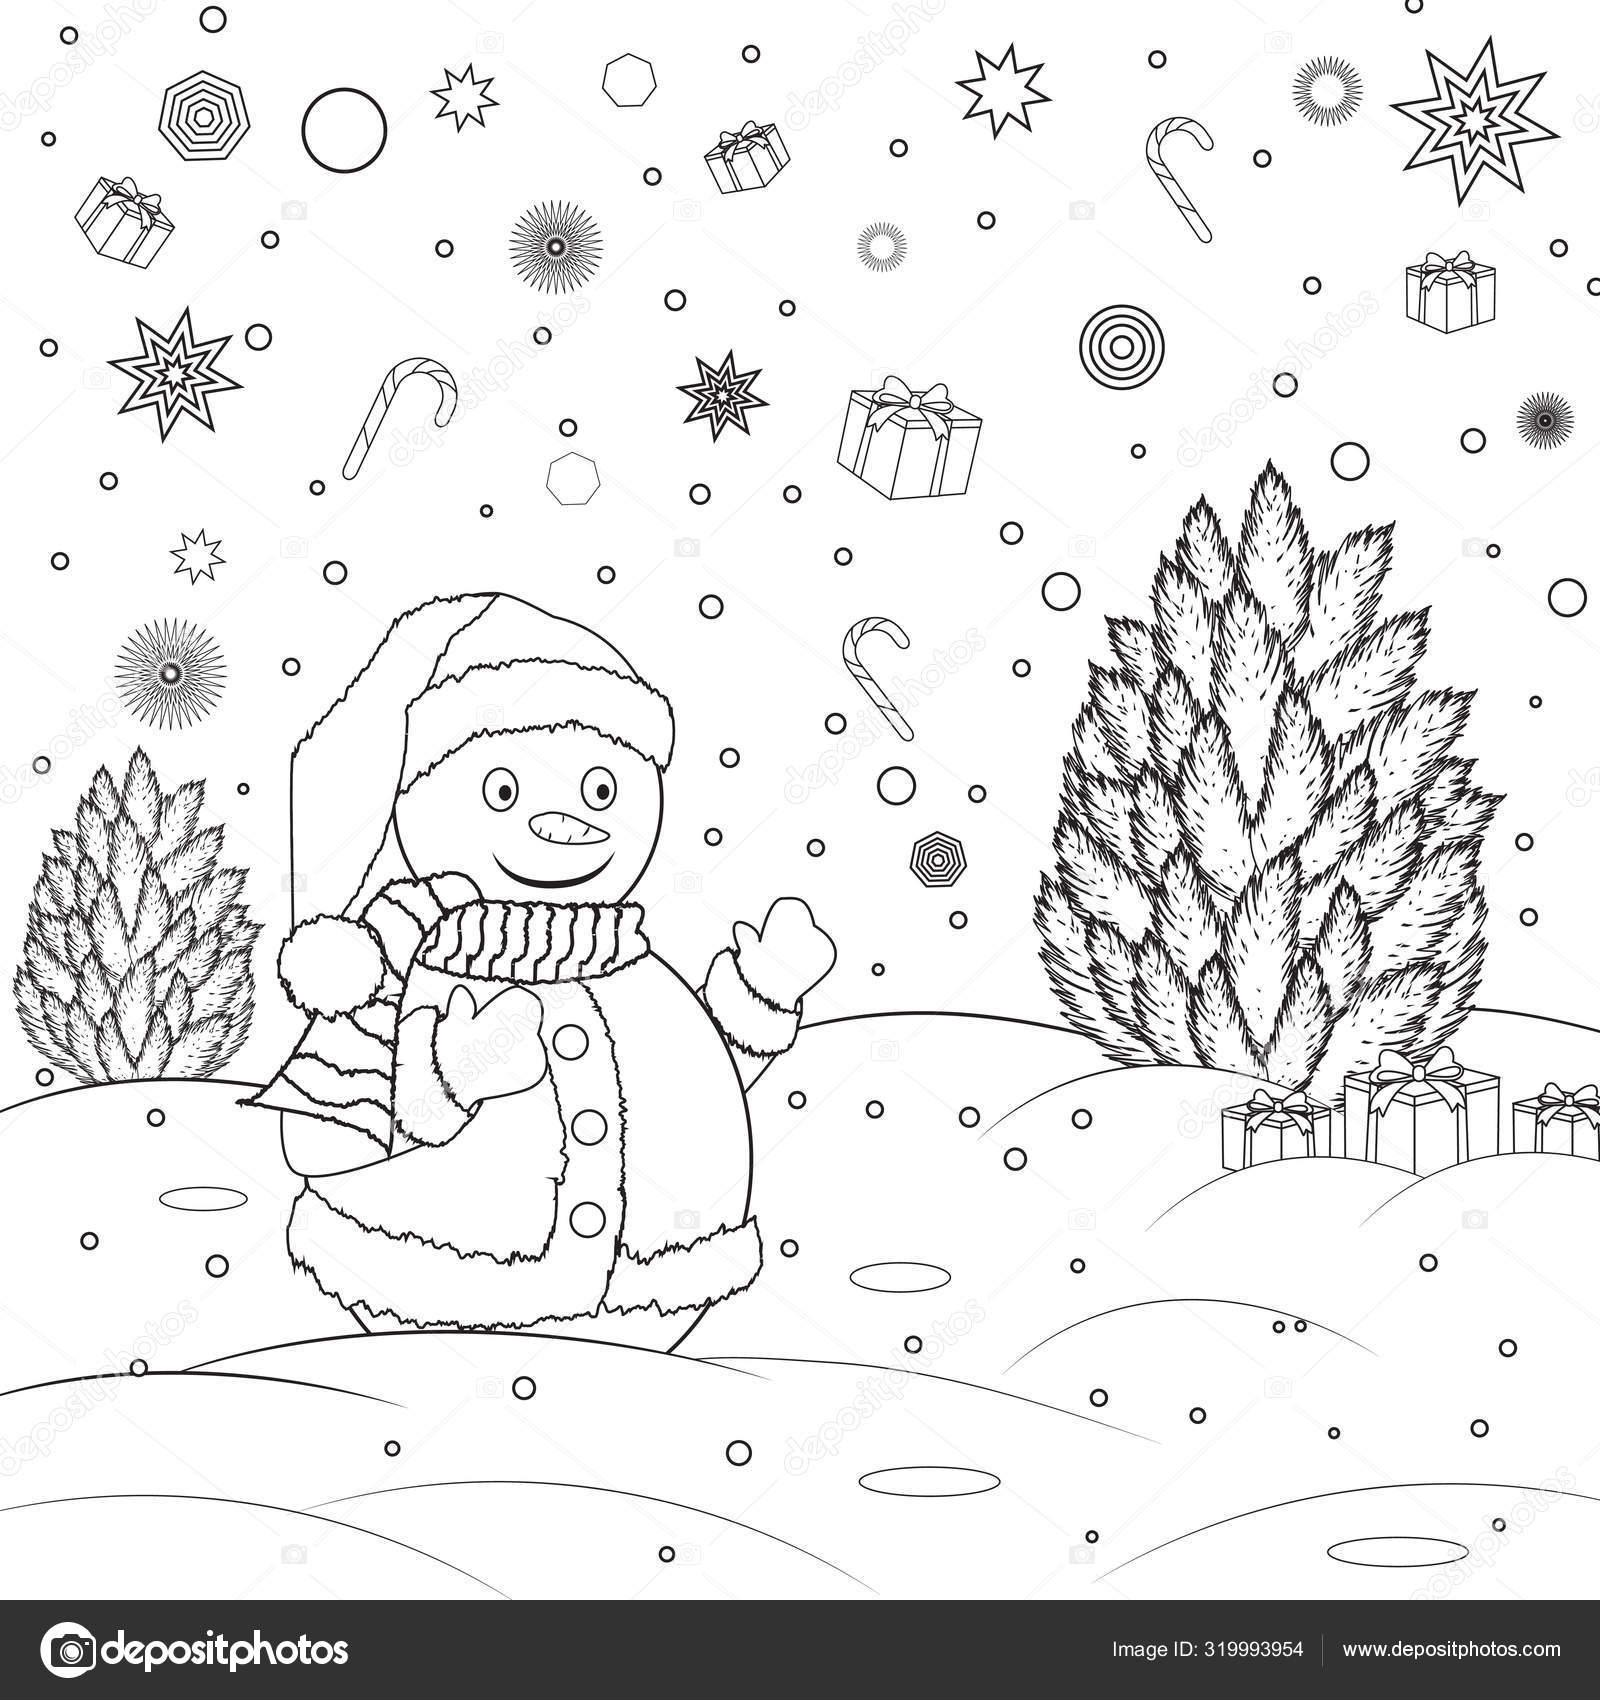 Coloring Book For Childrens Snow With Christmas Tree Black And White Outline Drawing Stock Vector C Lenagerman93 Gmail Com 319993954